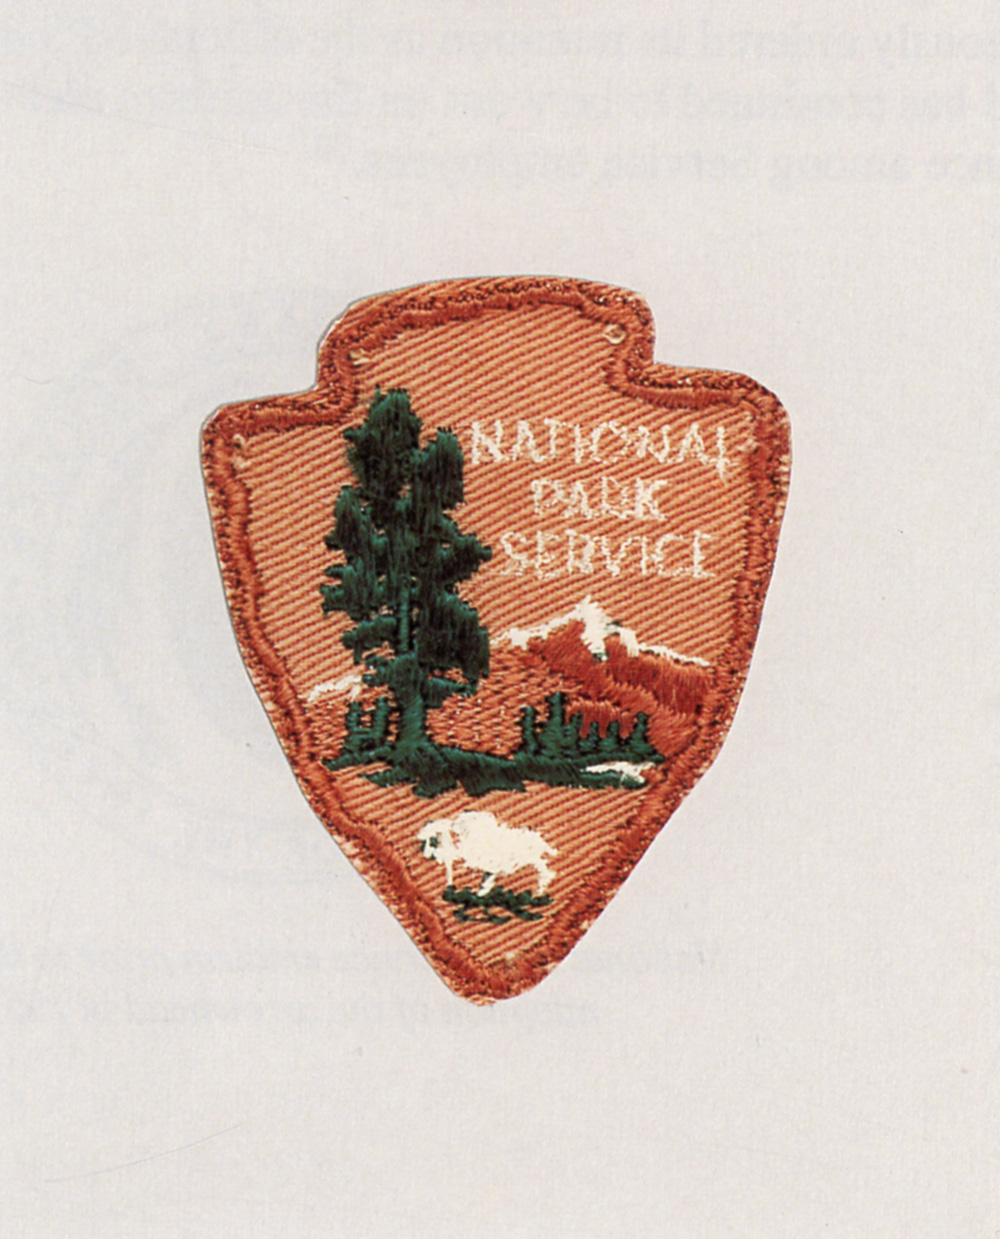 Red 1 Parking Arrowhead National Park Service Uniforms Badges And Insignia 1894